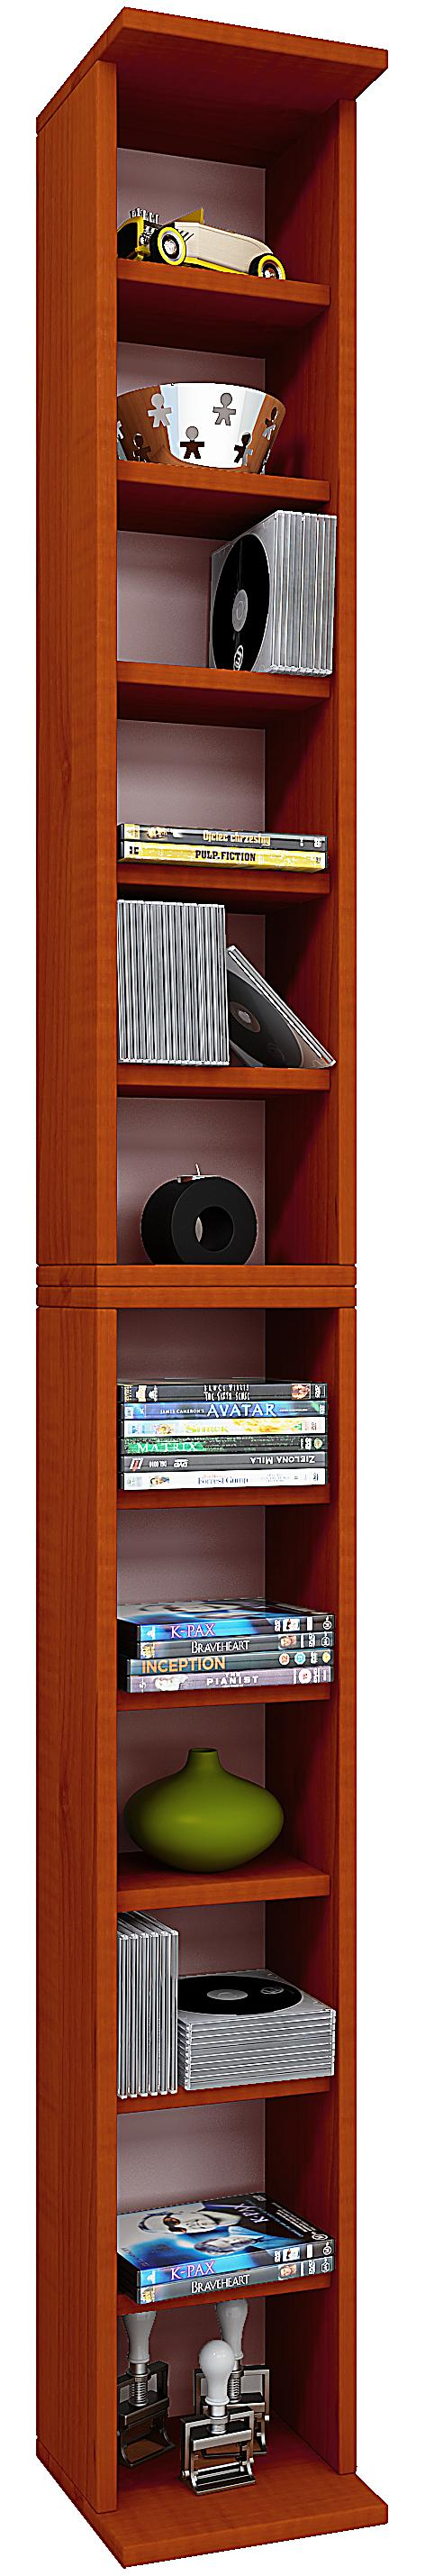 vcm regal dvd cd rack m bel aufbewahrung holzregal. Black Bedroom Furniture Sets. Home Design Ideas